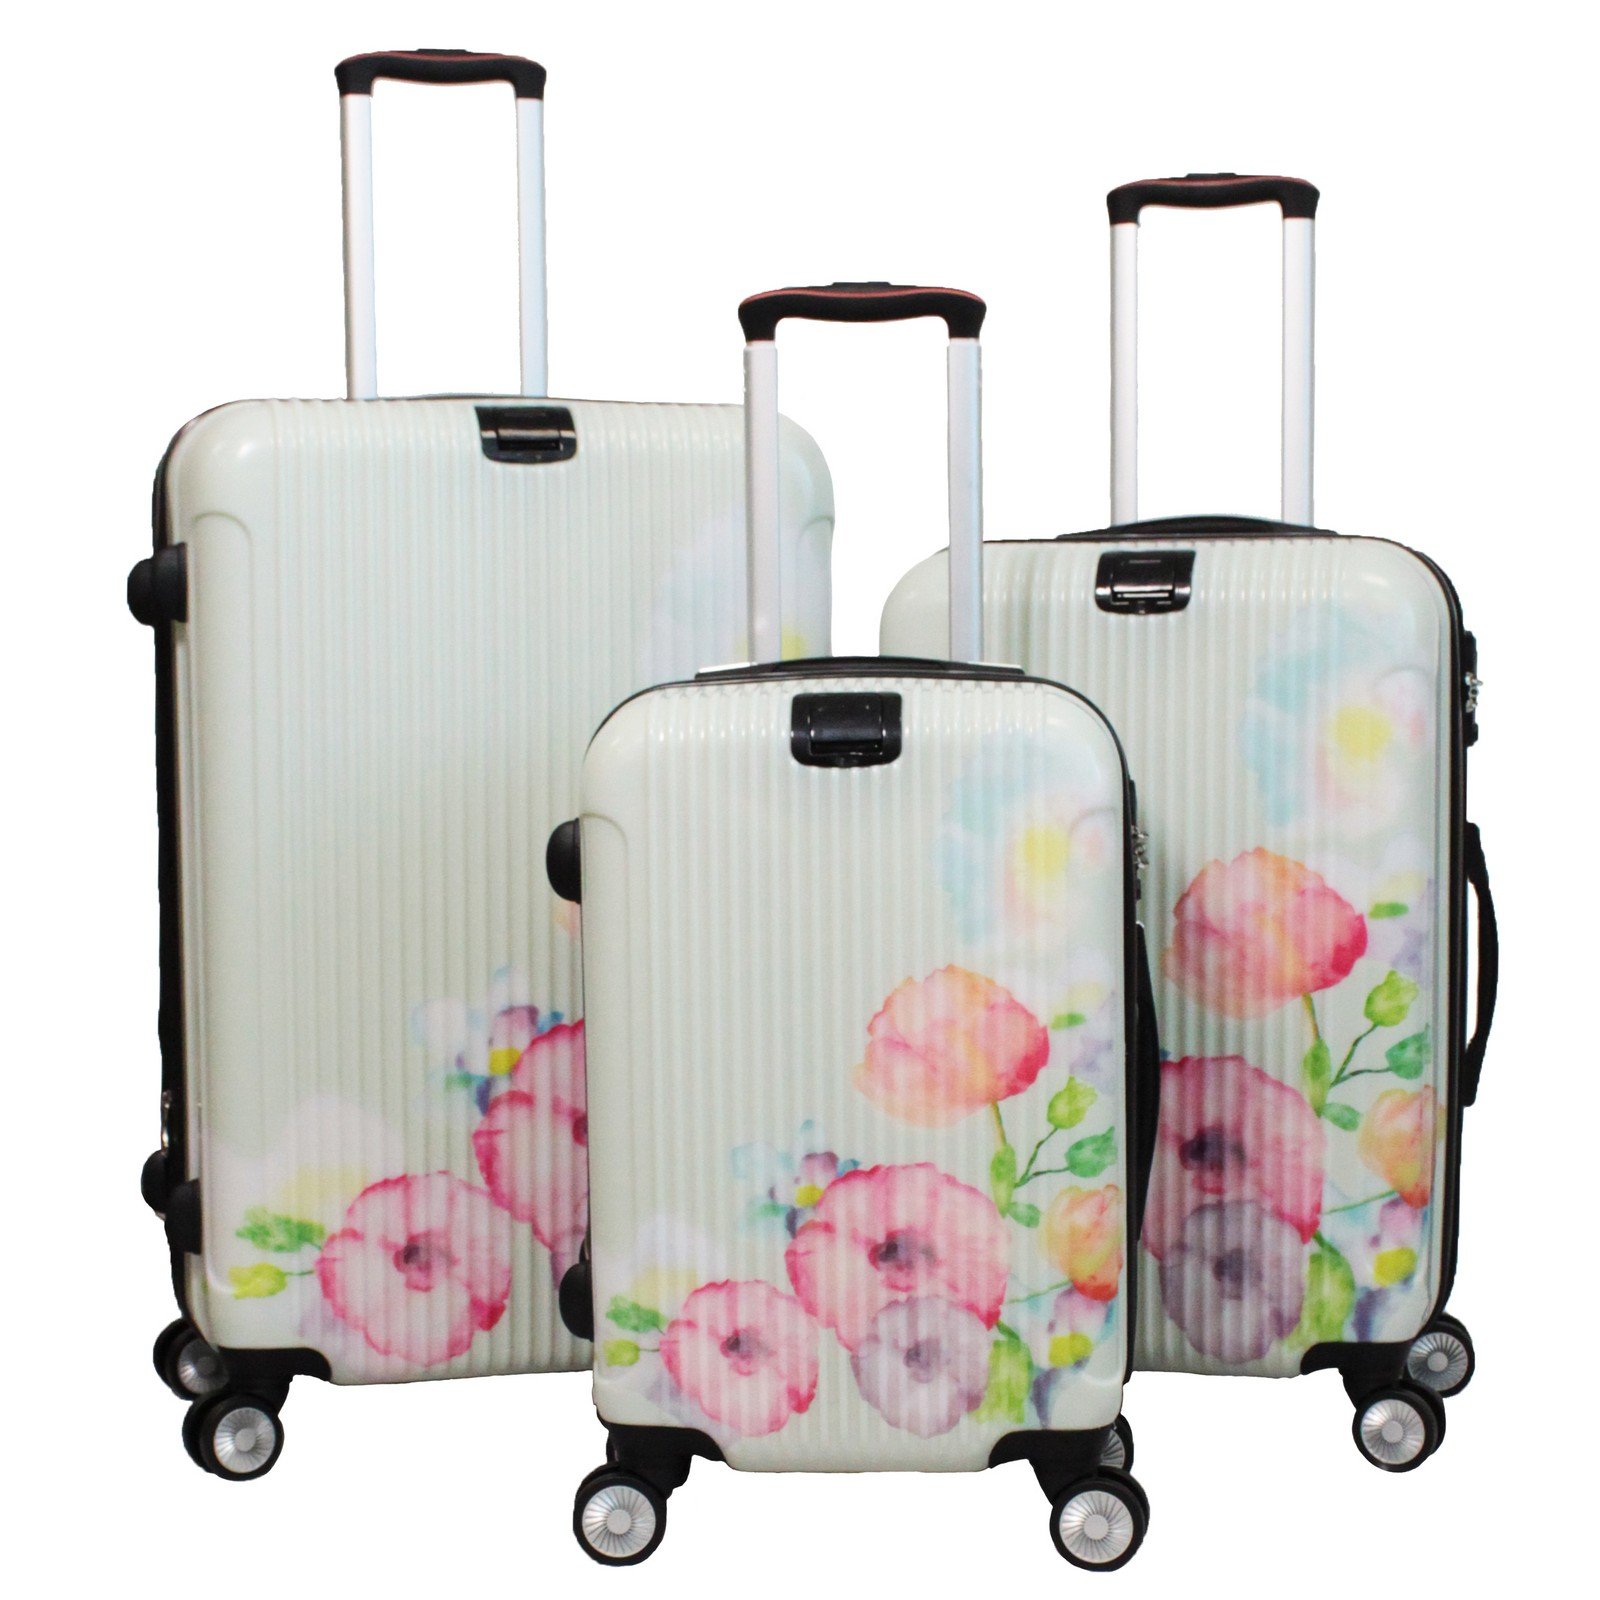 Travel well with your essentials neatly stowed in the colorful Rockland Luggage 3 Piece Carnival Hardside Spinner Set. This sturdy yet lightweight set is composed of ABS polycarbonate and designed to absorb impact and flex back to its original skuzcalsase.ml: $